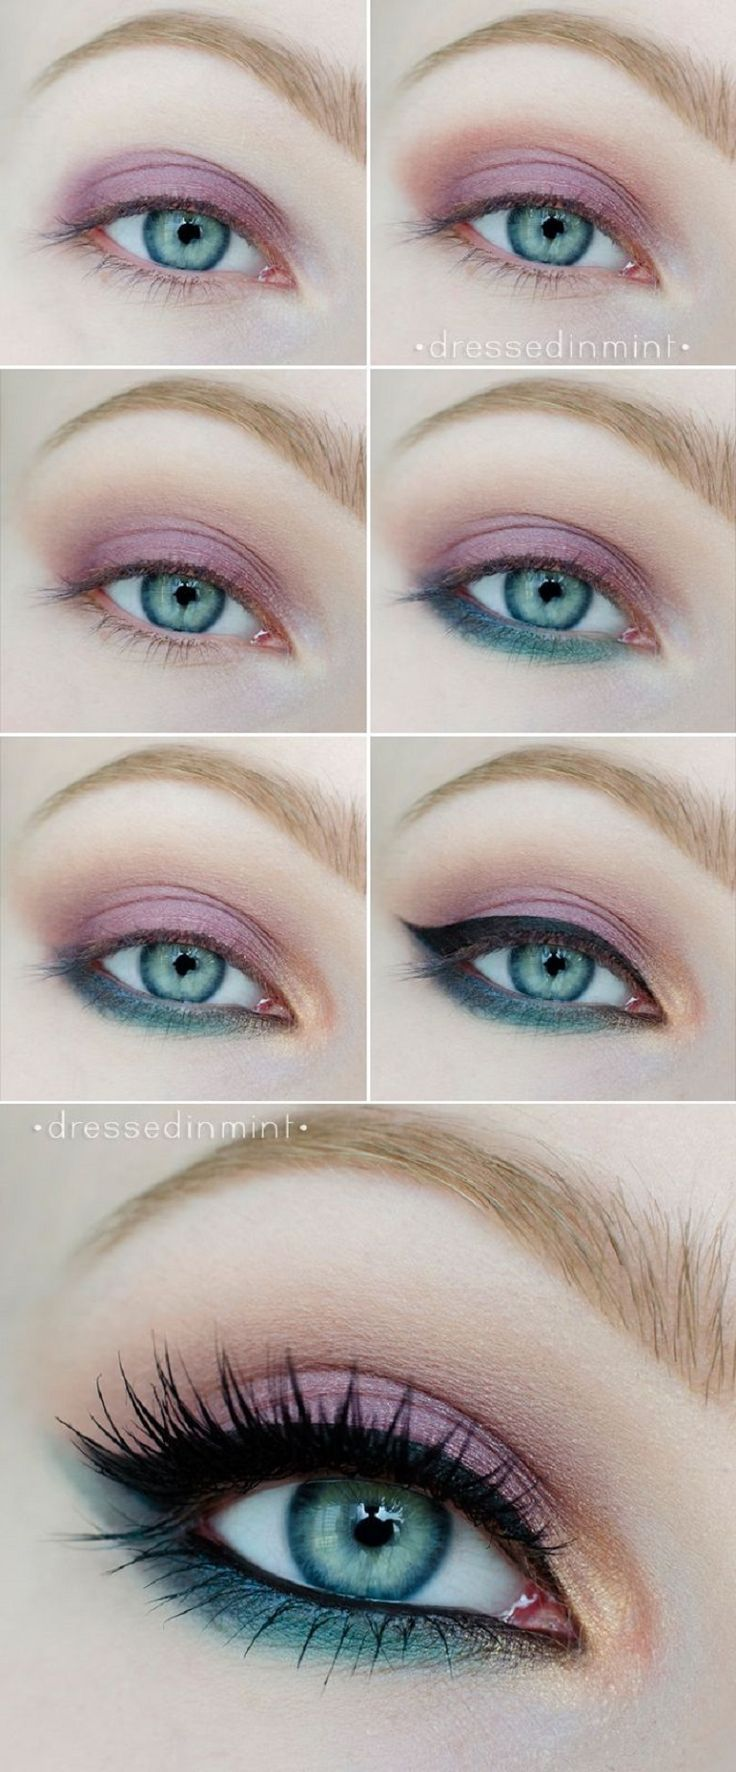 Makeup ideas 2017 2018 colorful eye makeup how to 16 makeup colorful eye makeup how to 16 makeup tutorials to get the spring 2015 look baditri Choice Image